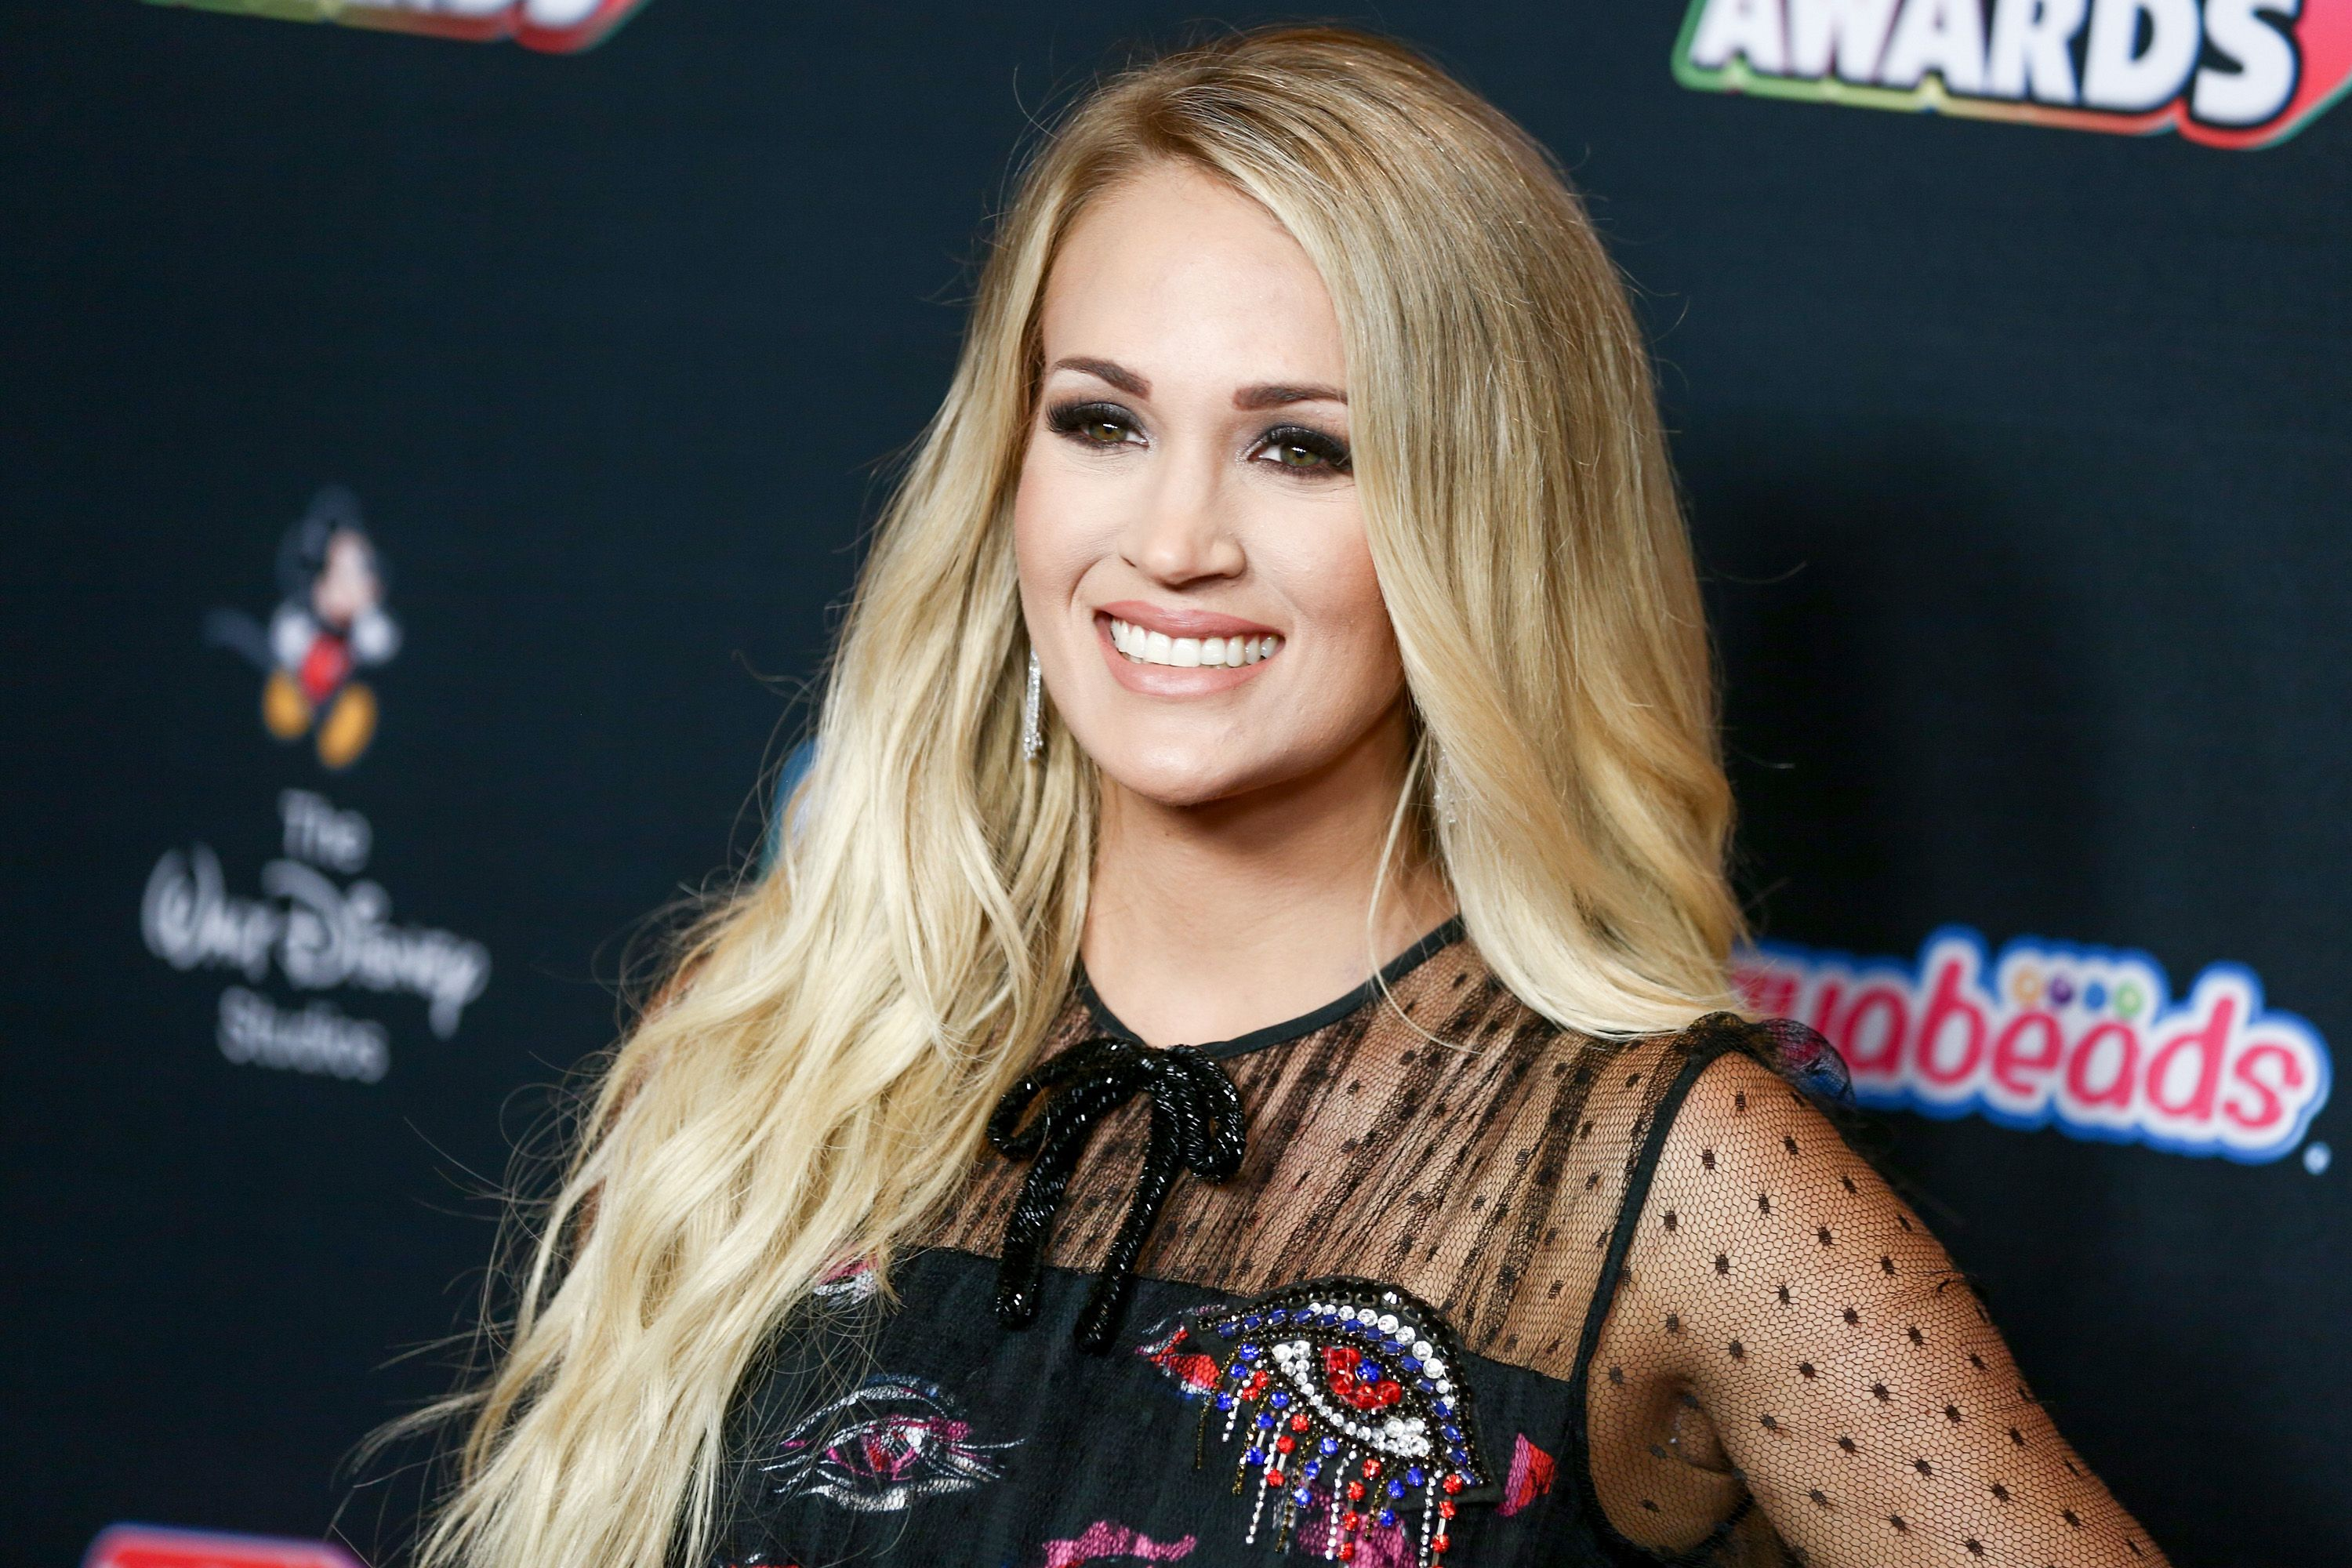 Carrie Underwood at the 2018 Radio Disney Music Awards at Loews Hollywood Hotel on June 22, 2018 | Photo: Getty Images